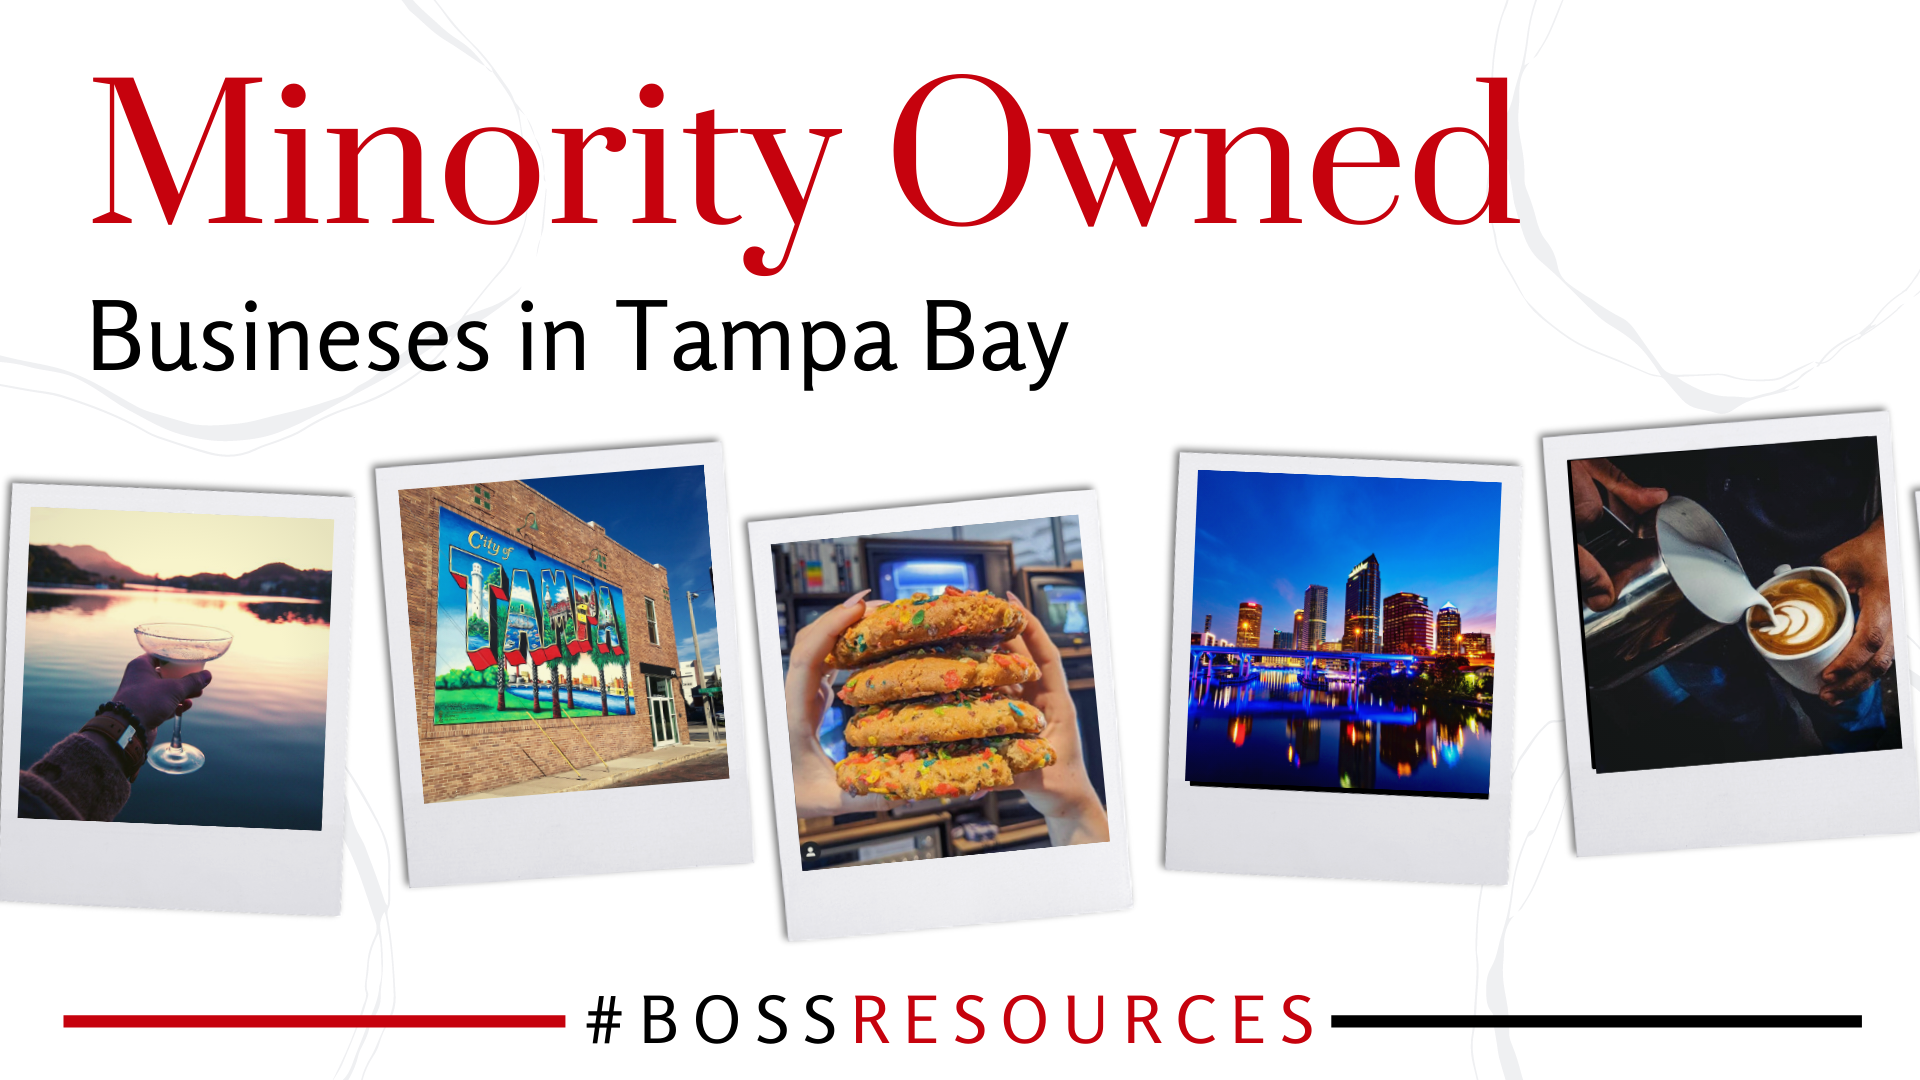 Minority-Owned Businesses in Tampa Bay